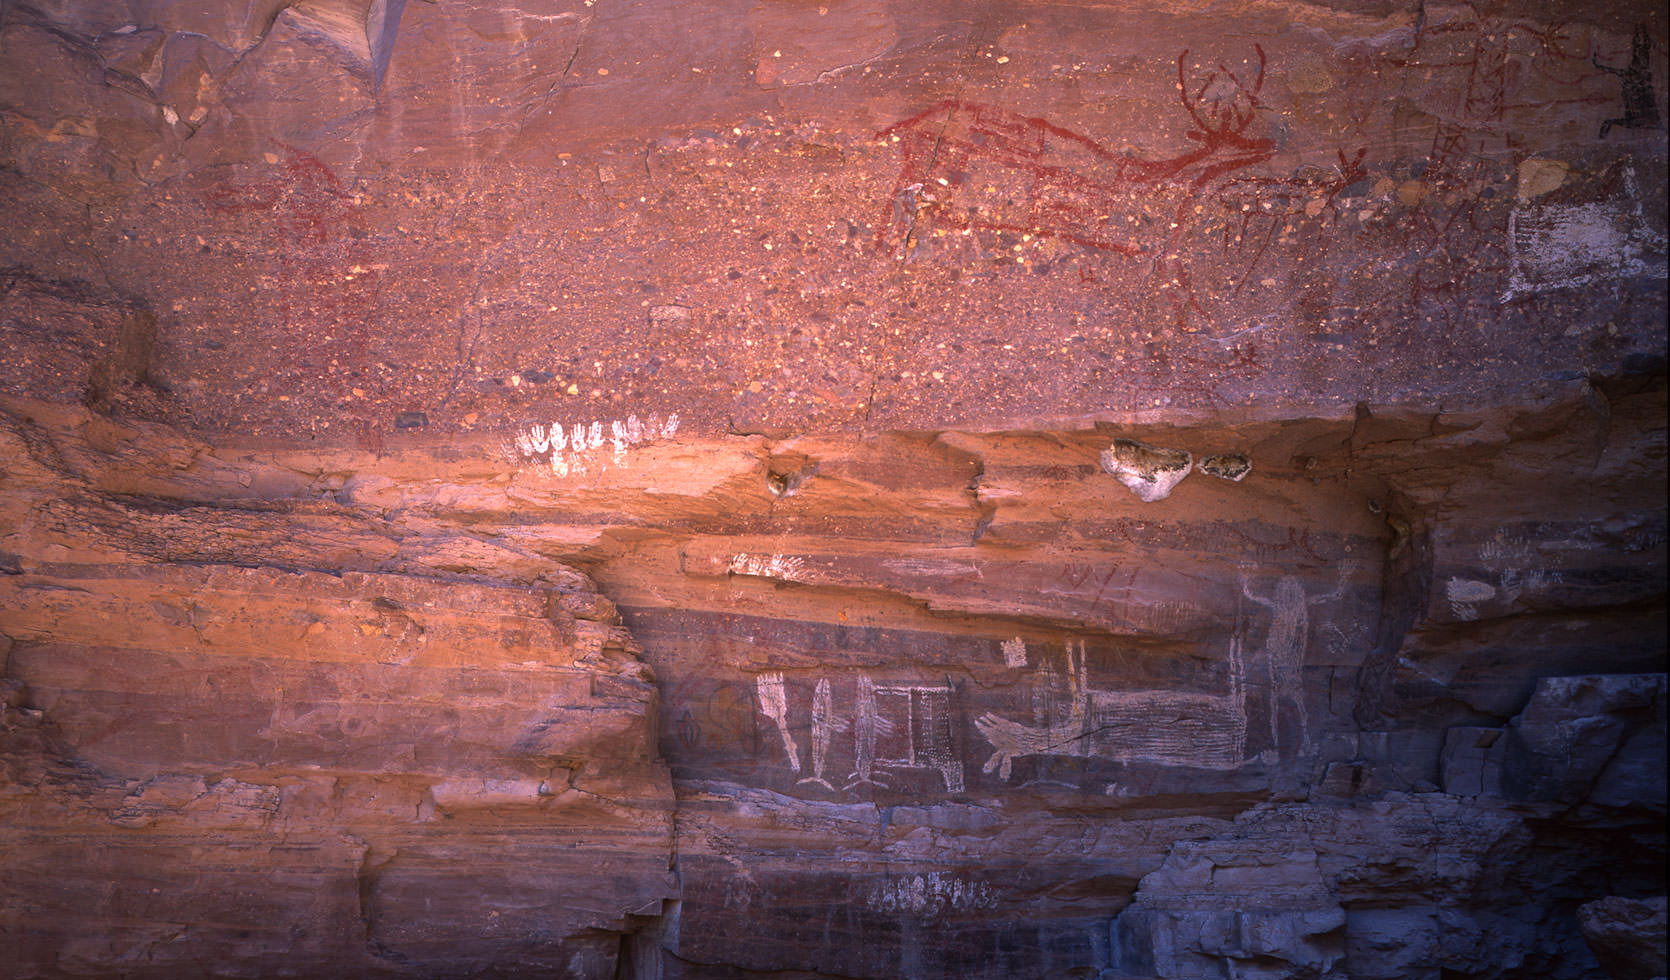 Native American Pictographs in Baja California Sur